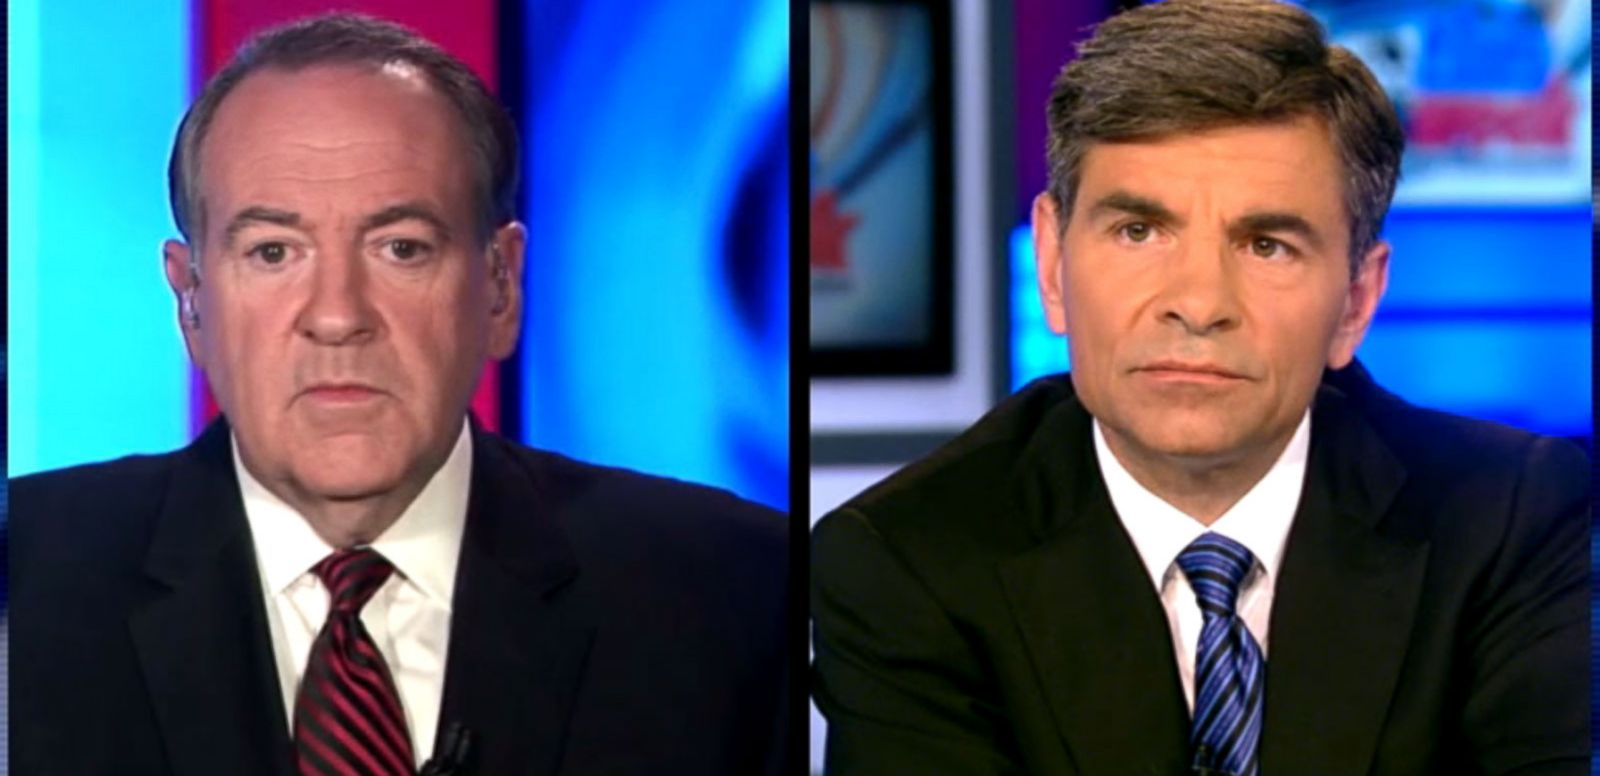 VIDEO: Mike Huckabee: So Much of President's Eulogy 'Brilliant'